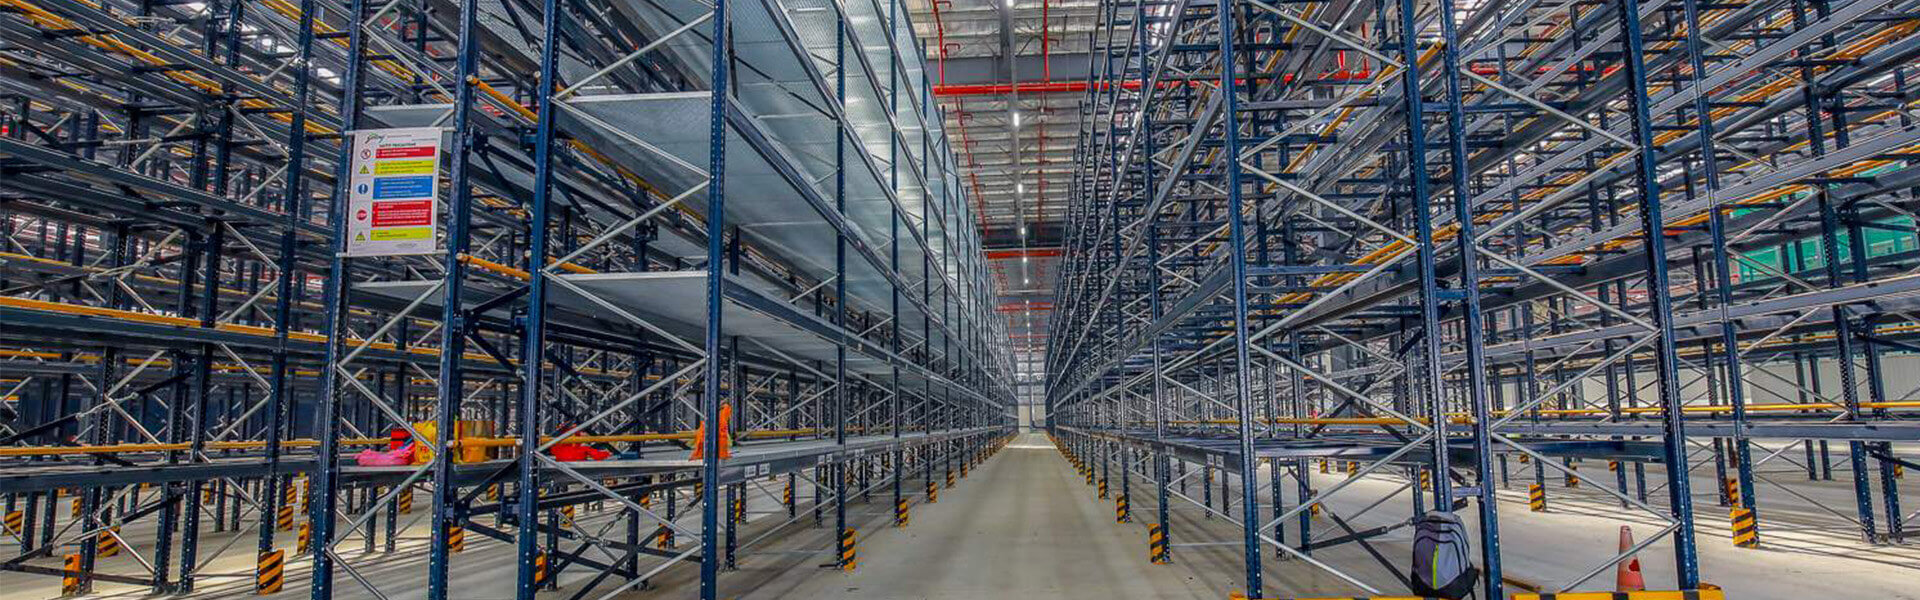 Video-Installation of Storage System at Asia